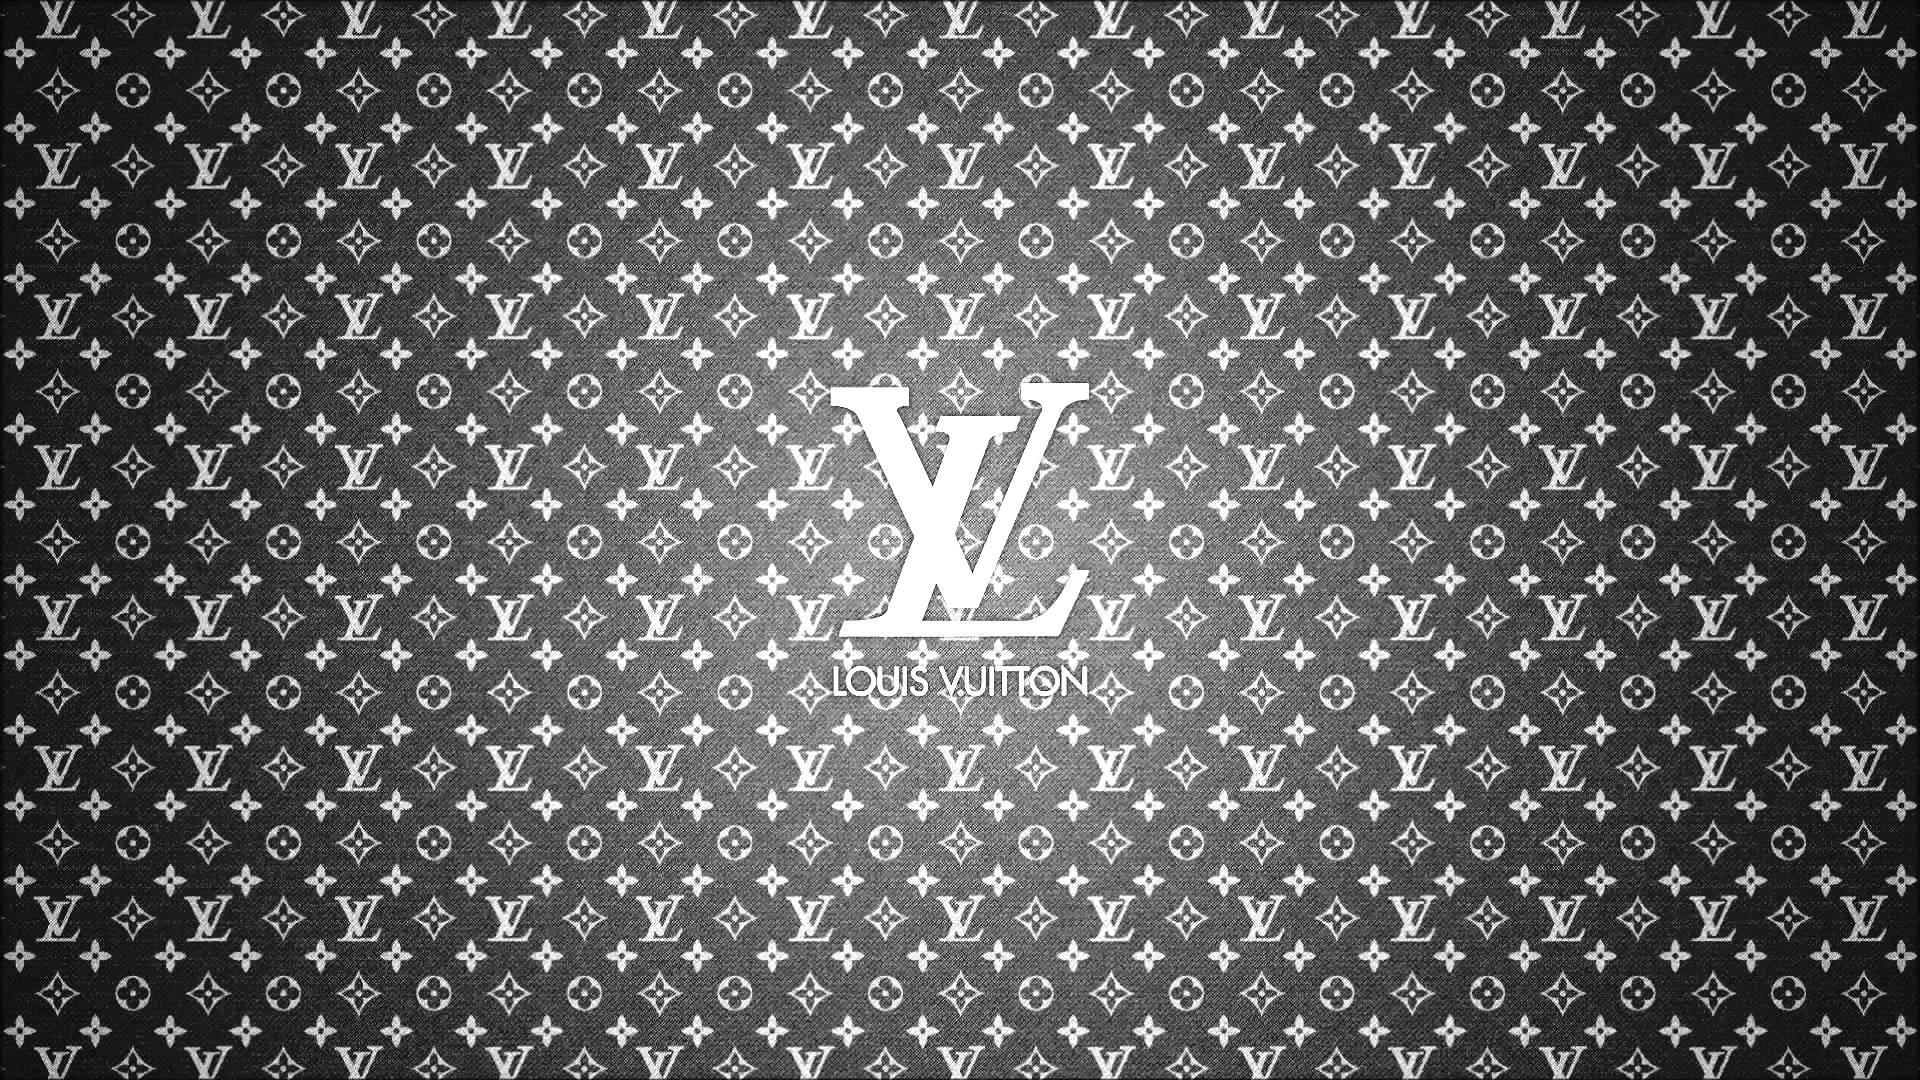 Louis vuitton backgrounds wallpaper cave wallpapers for louis vuitton background black voltagebd Choice Image